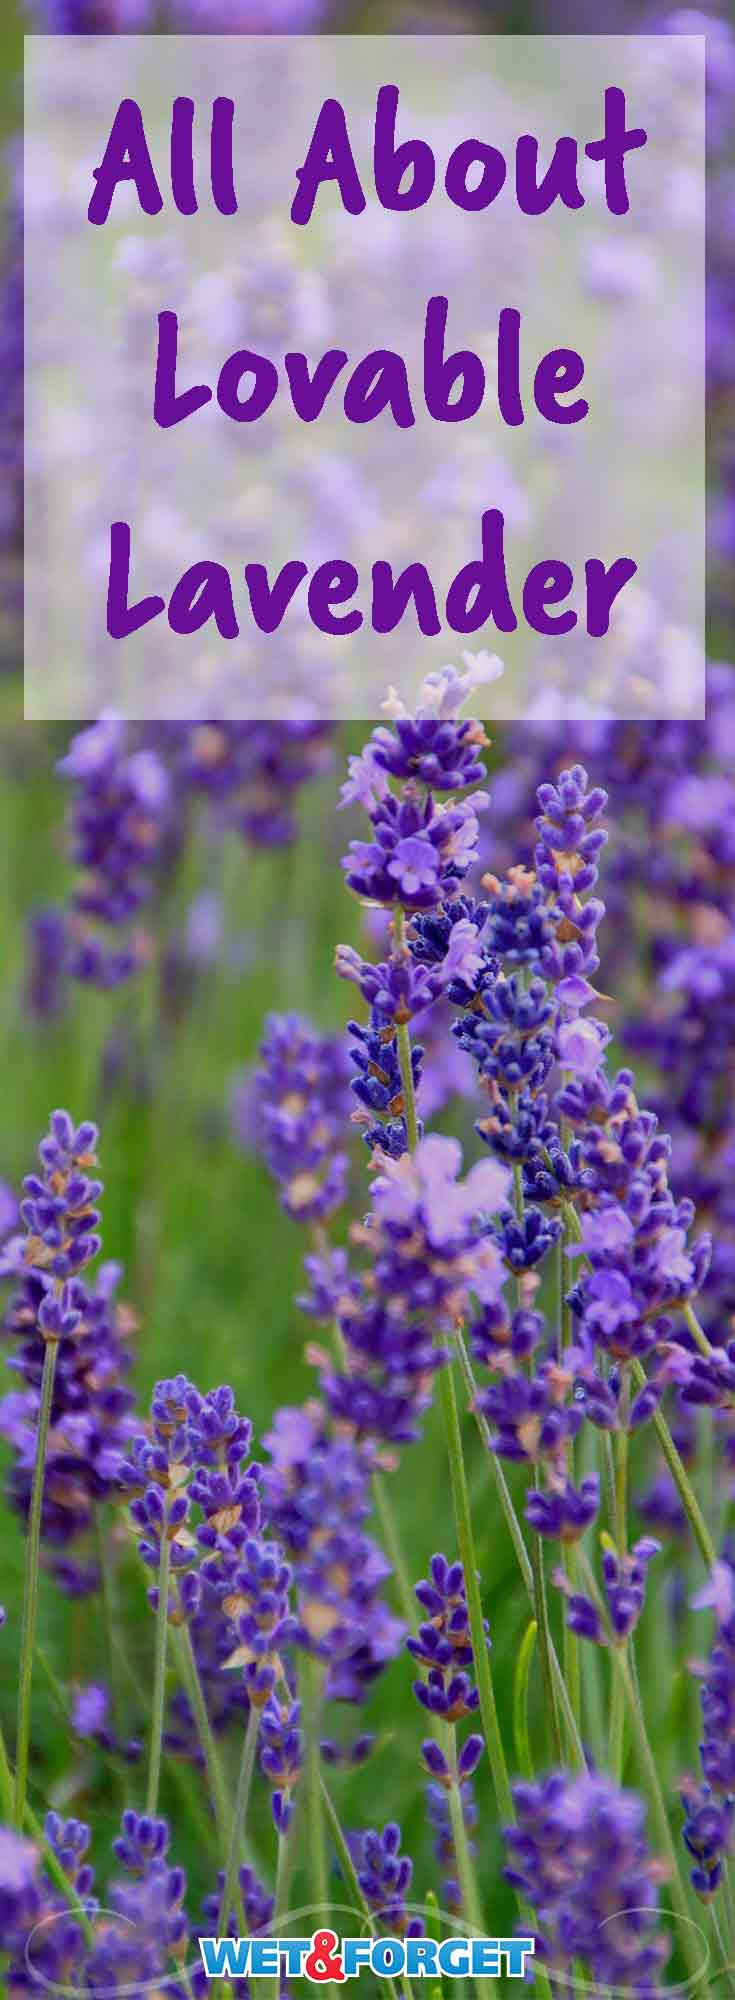 Lavender is one of the most versatile flowers. It adds a beautiful pop of color to your garden and can even be used in cooking. Learn more about the many characteristics of lavender.